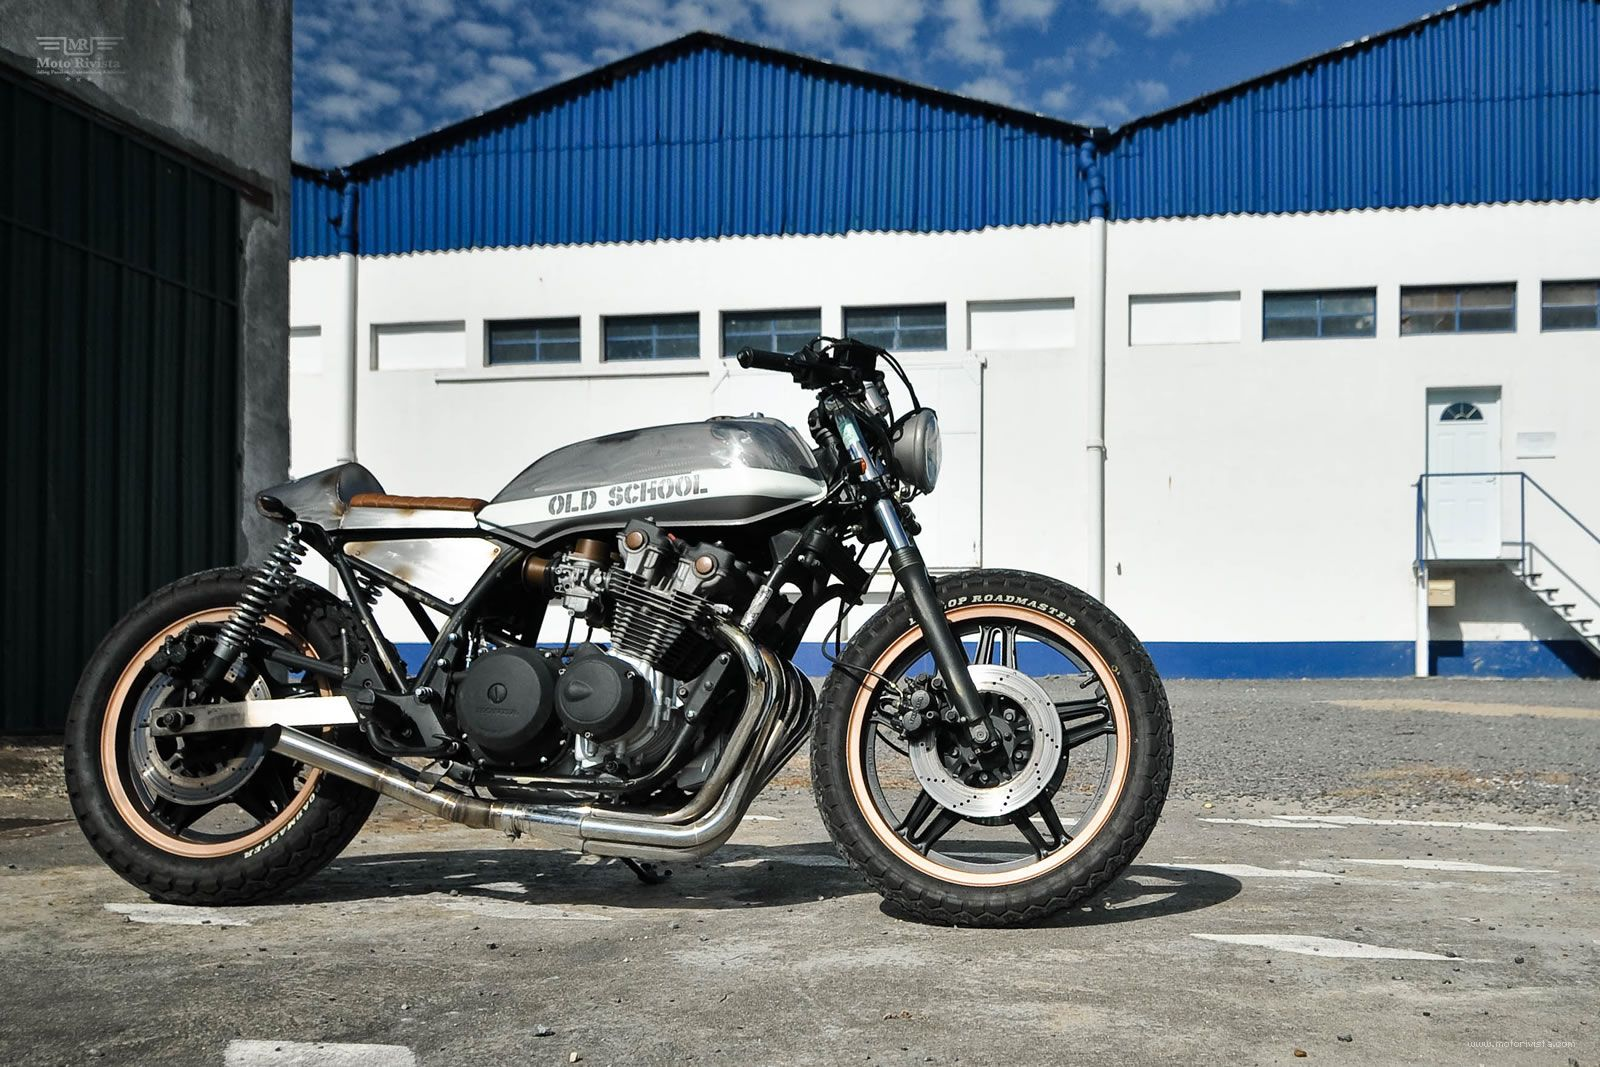 Envisaging and witnessing the transformation from stock to this honda custom cb900 is the biggest reward